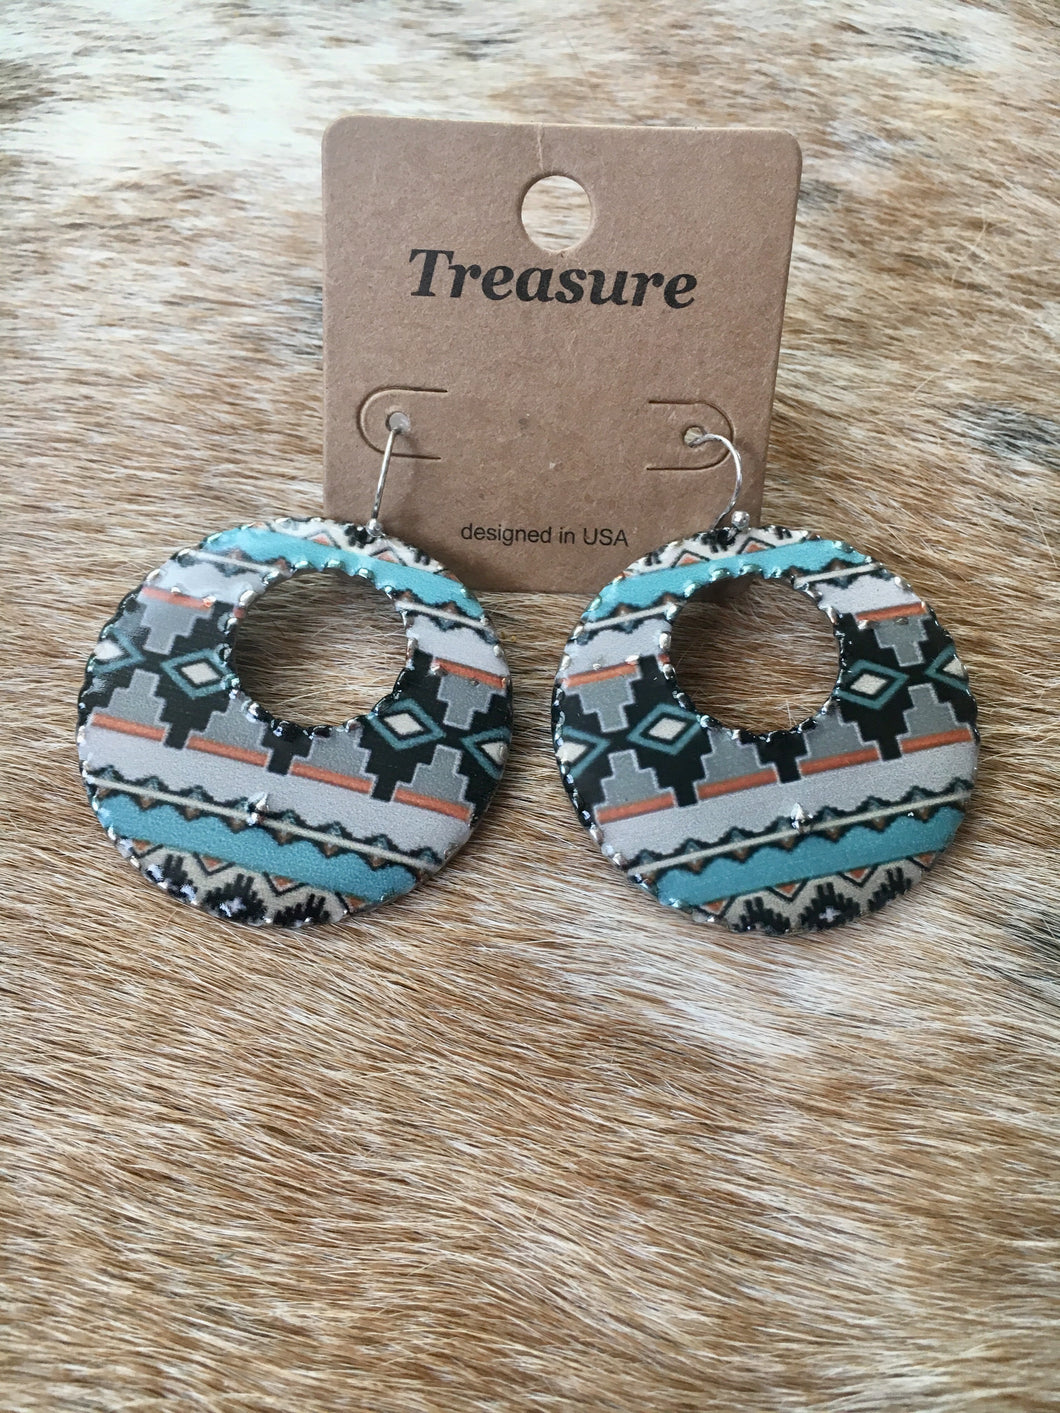 Treasure Aztec Earrings